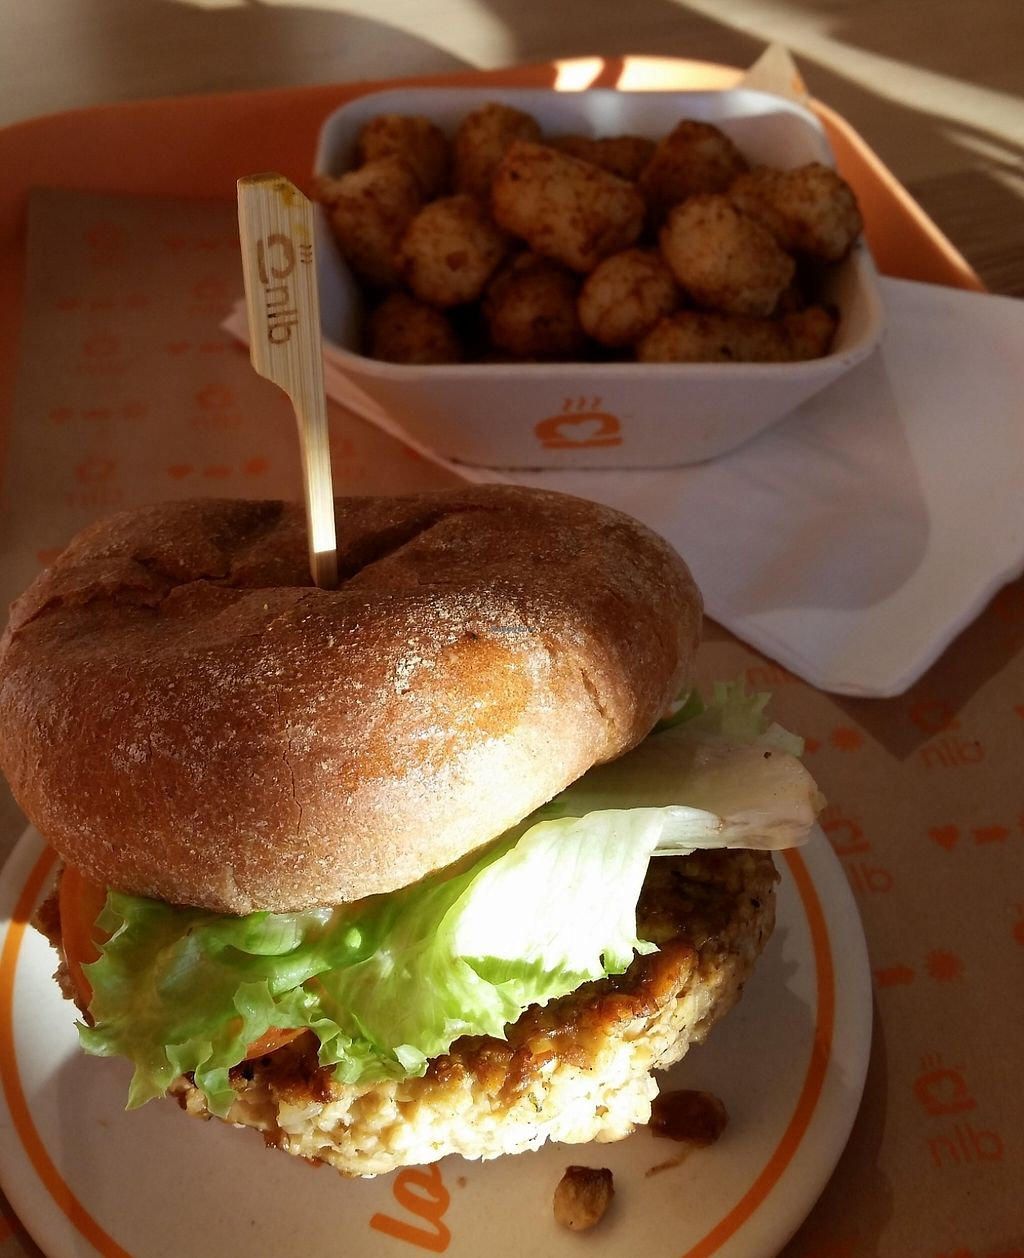 "Photo of Next Level Burger  by <a href=""/members/profile/katypine"">katypine</a> <br/>tangy tempeh burger and tots <br/> October 24, 2015  - <a href='/contact/abuse/image/64640/221654'>Report</a>"